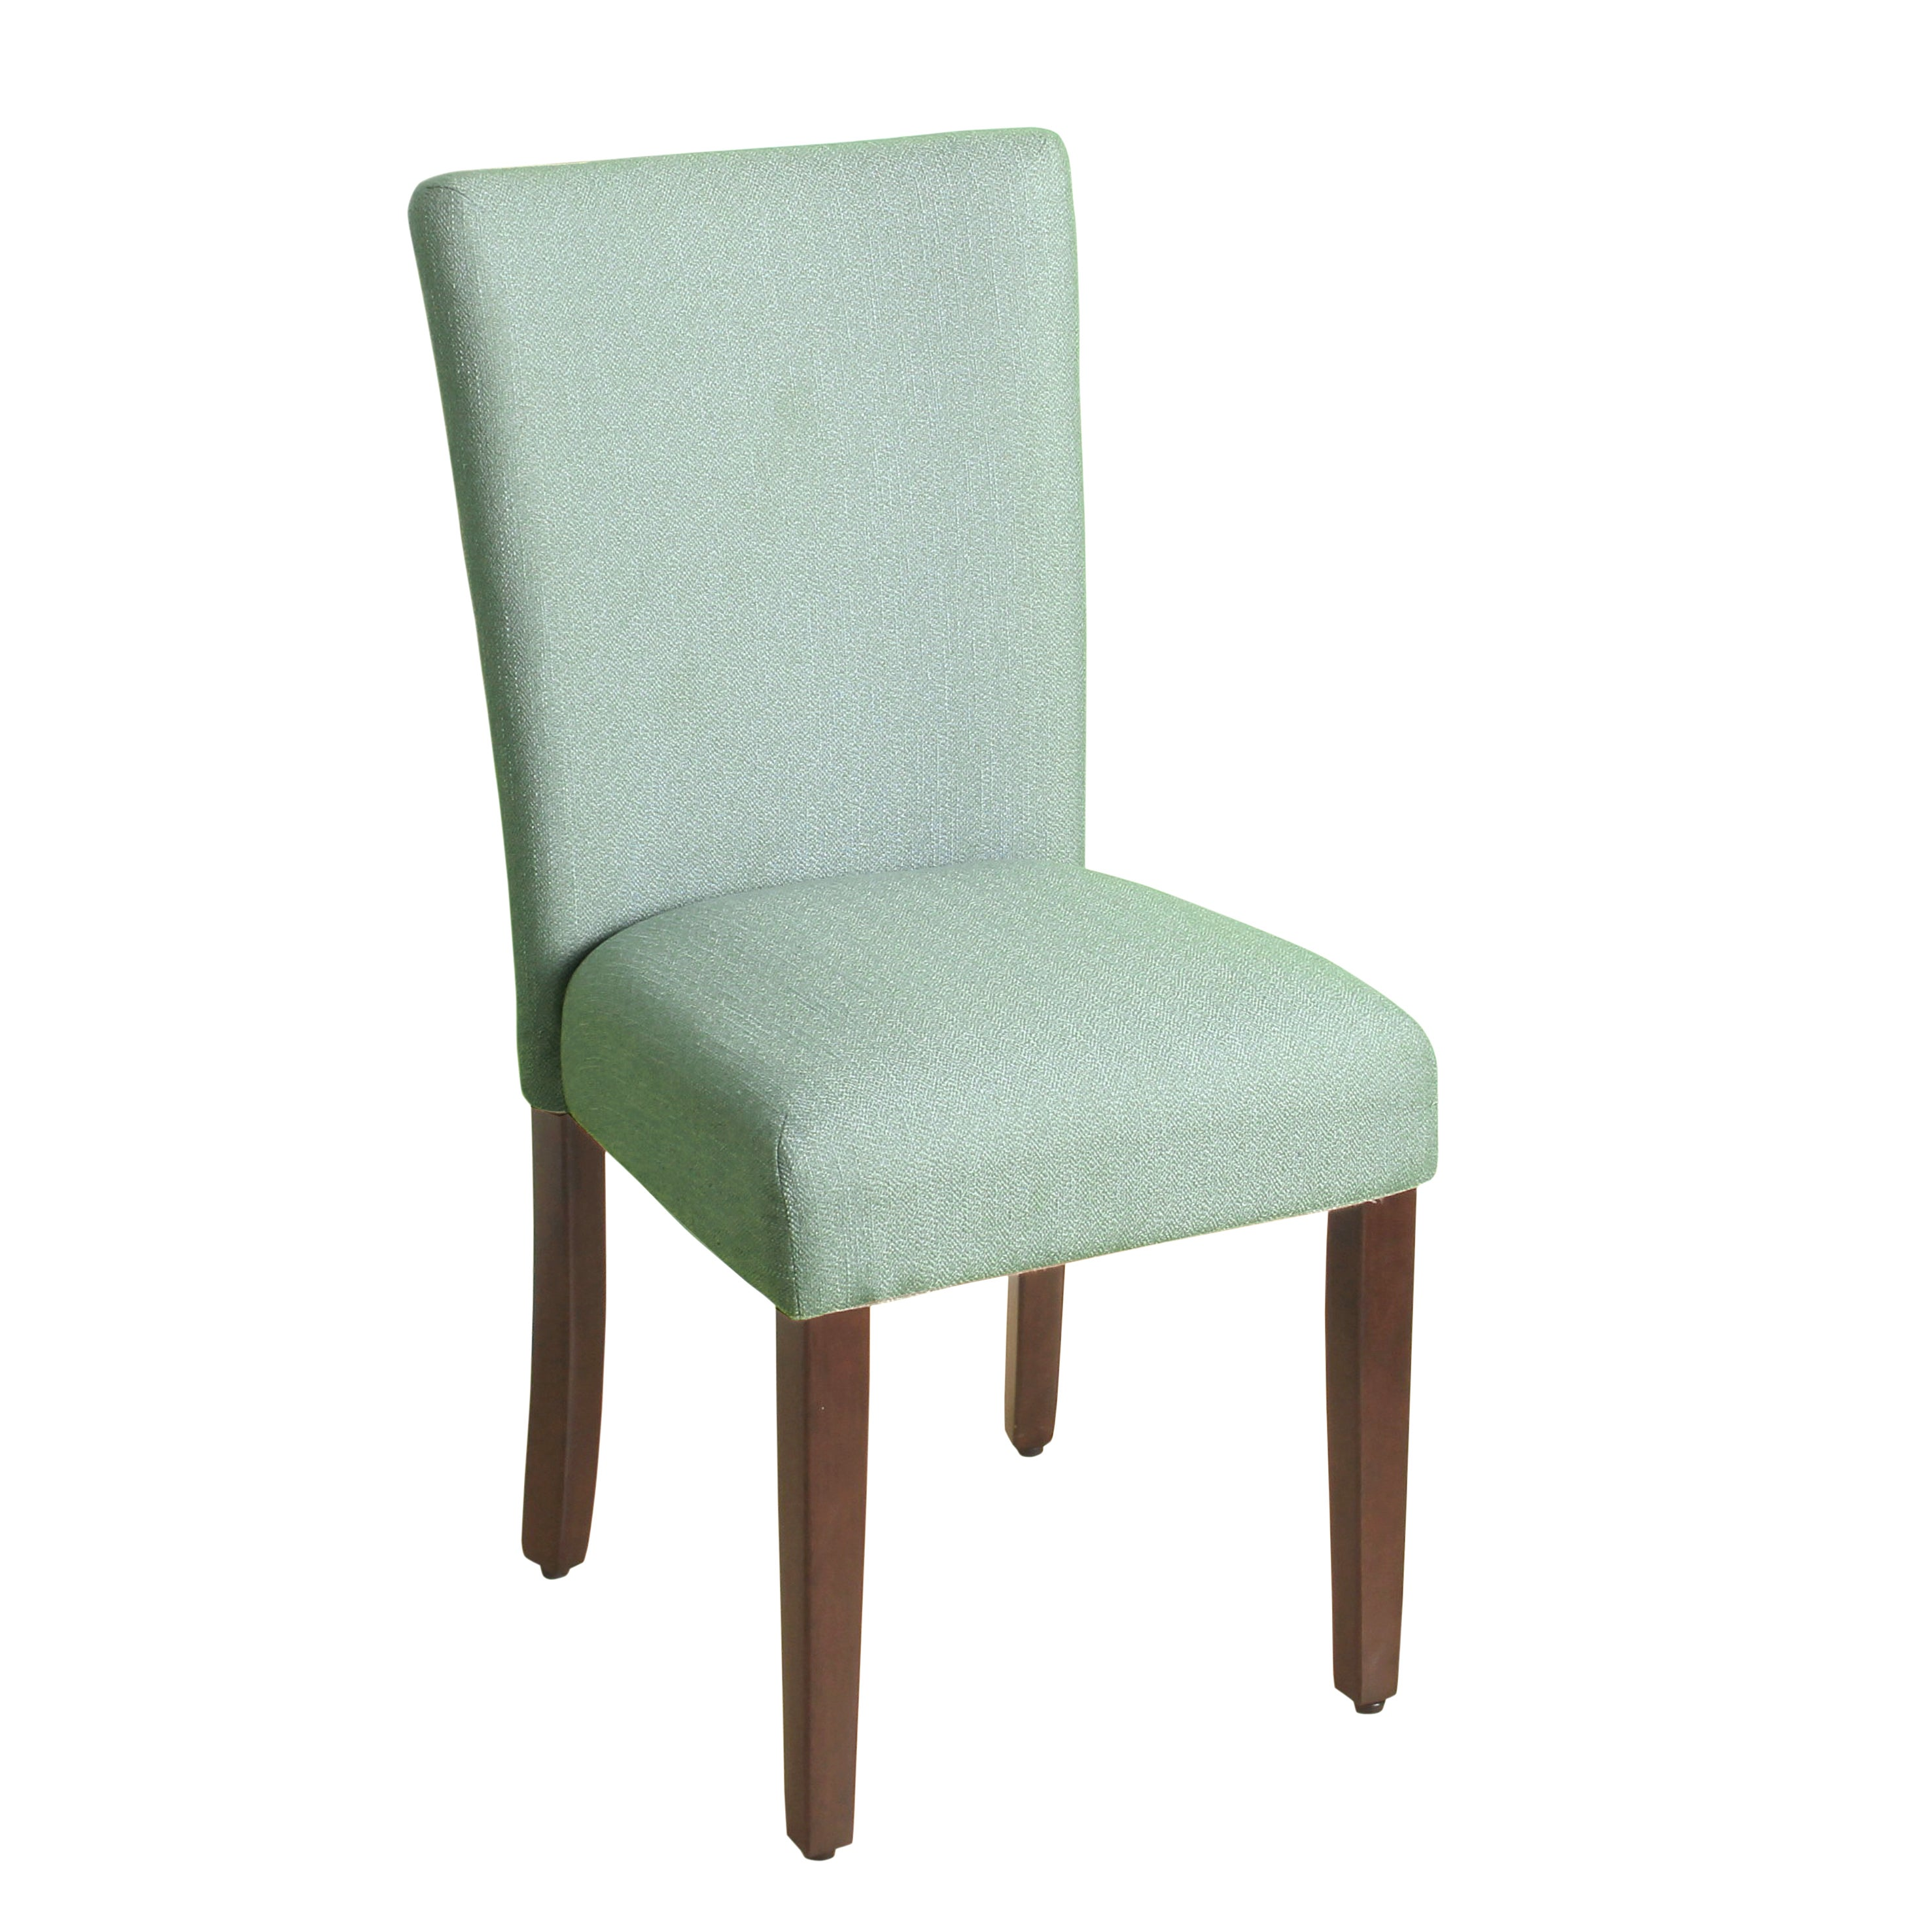 Prime Homepop Seafoam Green Linen Look Parson Dining Cha Ncnpc Chair Design For Home Ncnpcorg